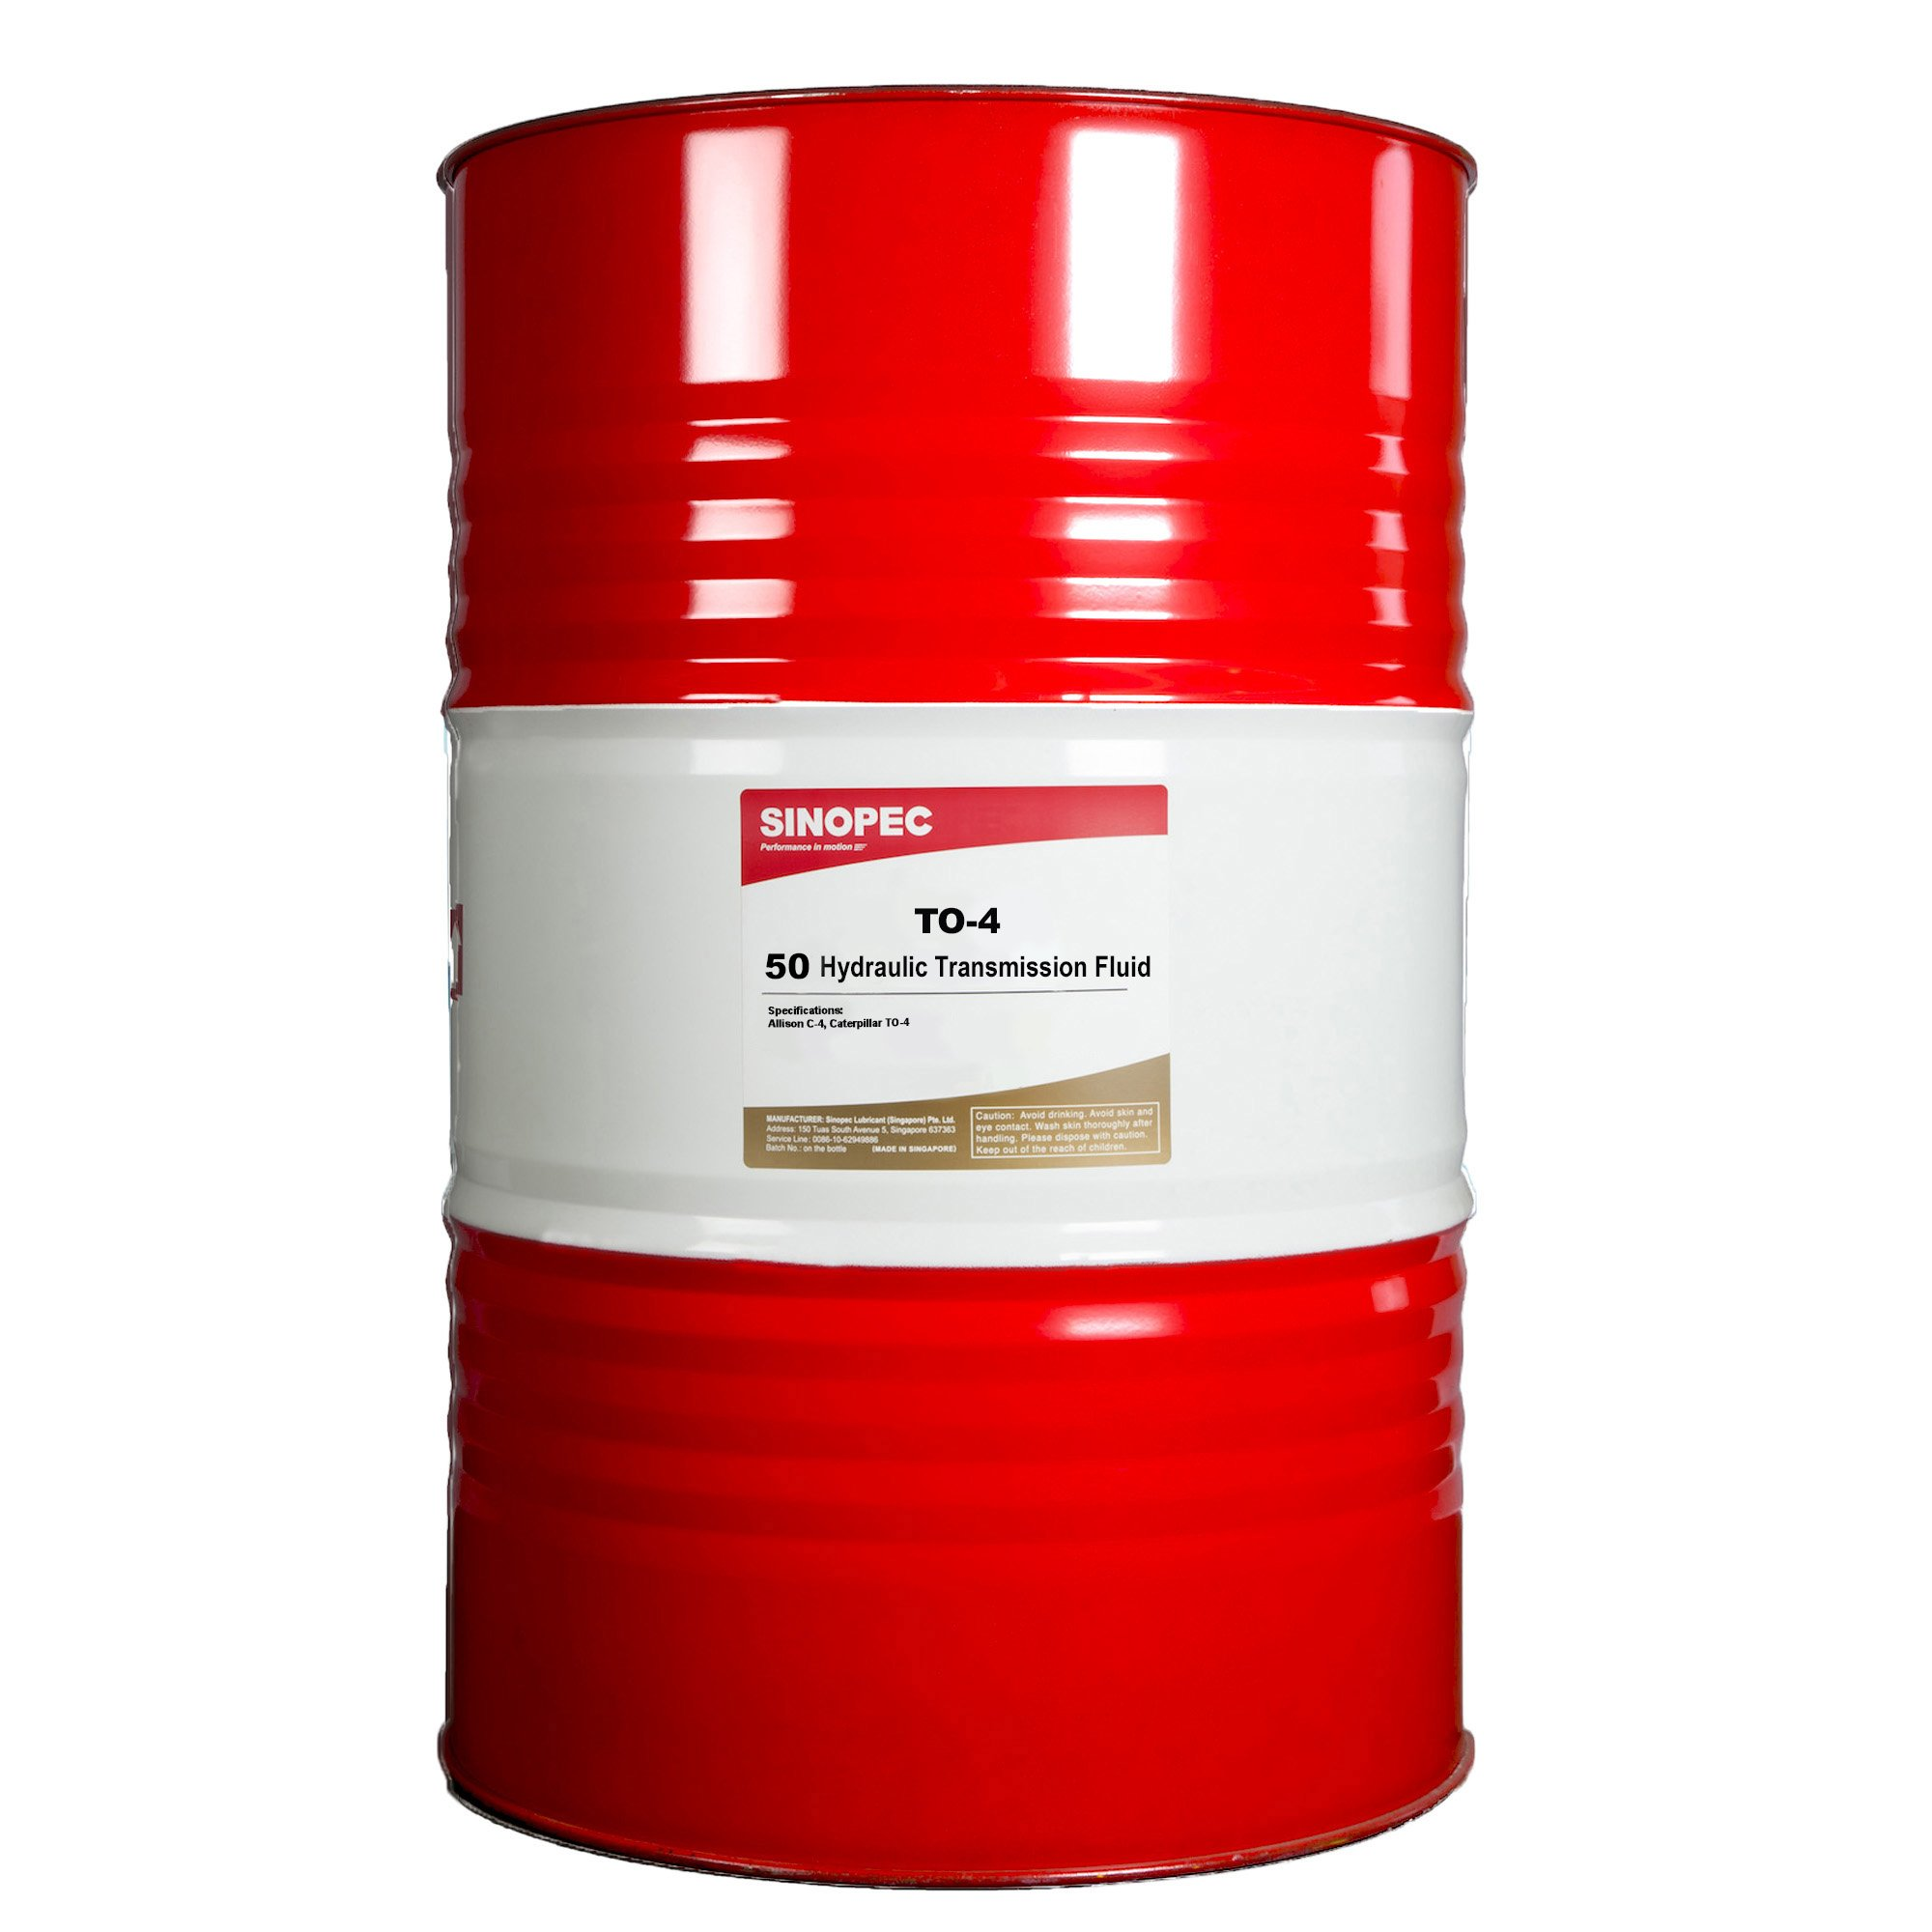 Sinopec TO-4 50 Heavy Duty Transmission Fluid, 55 Gallon Drum